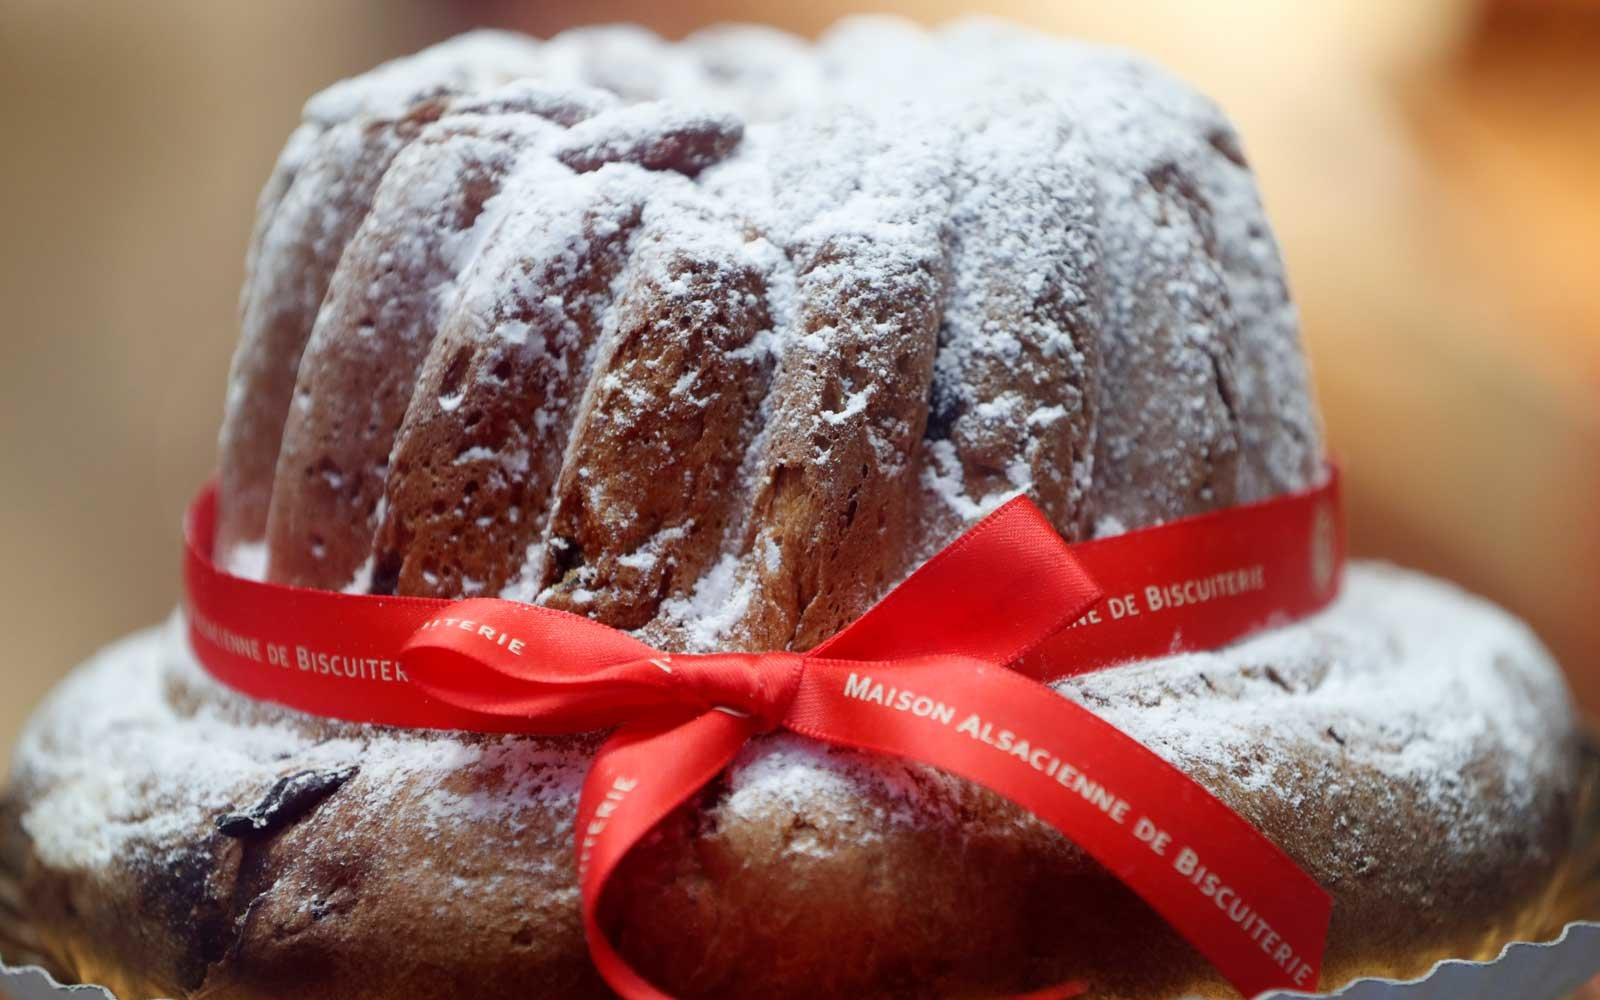 This brioche-like circular treat often comes served with confectioner's sugar.